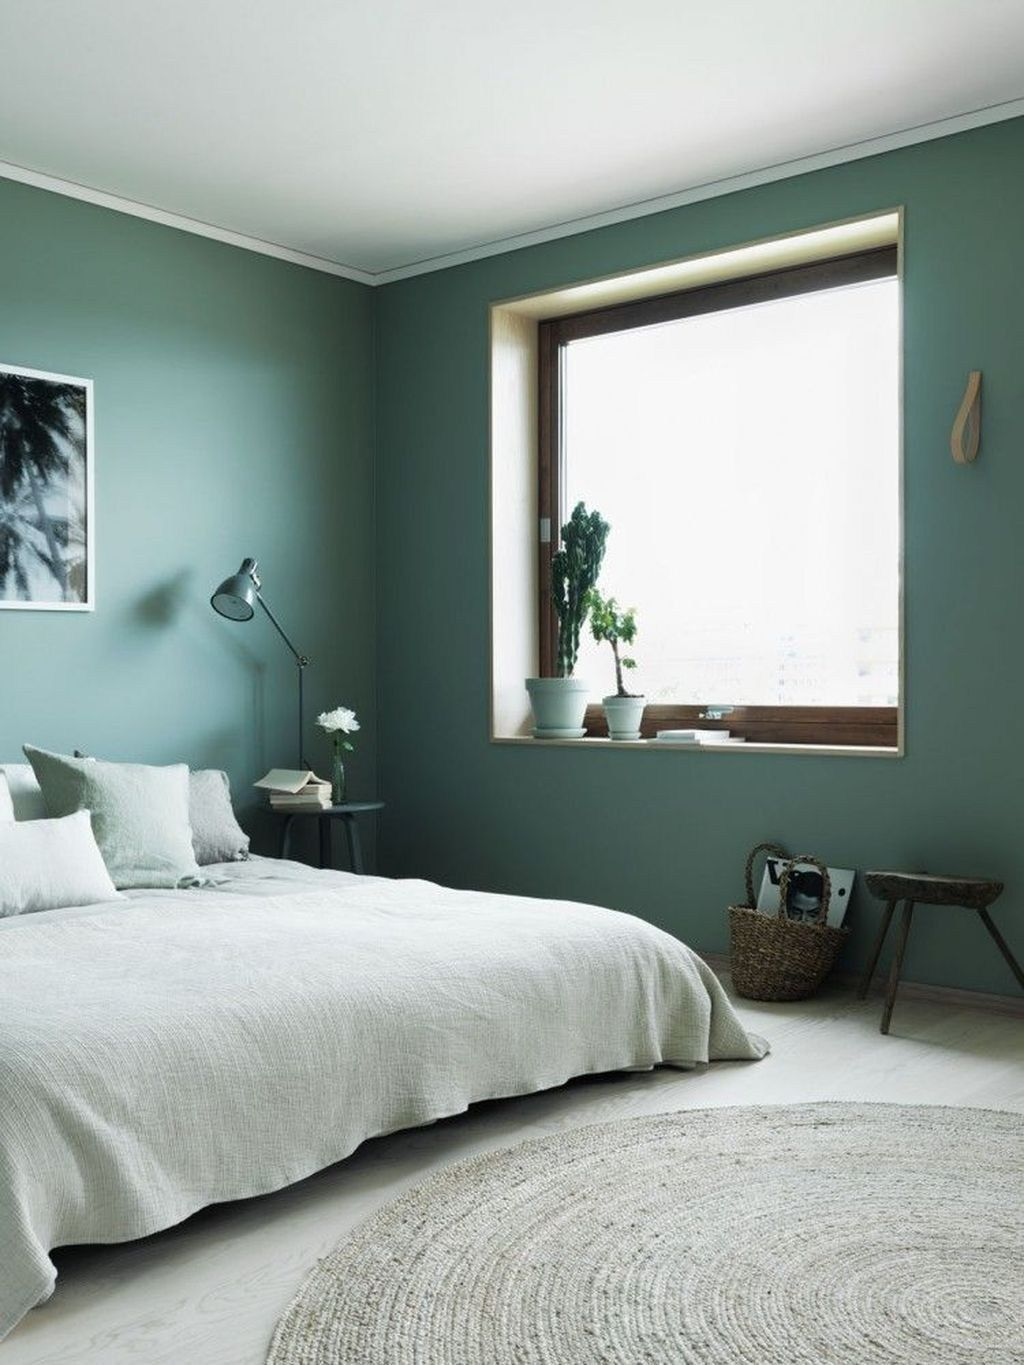 50 Beautiful And Calm Green Bedroom Decoration Ideas Trendehouse Bedroom Green Bedroom Interior Home Decor Bedroom